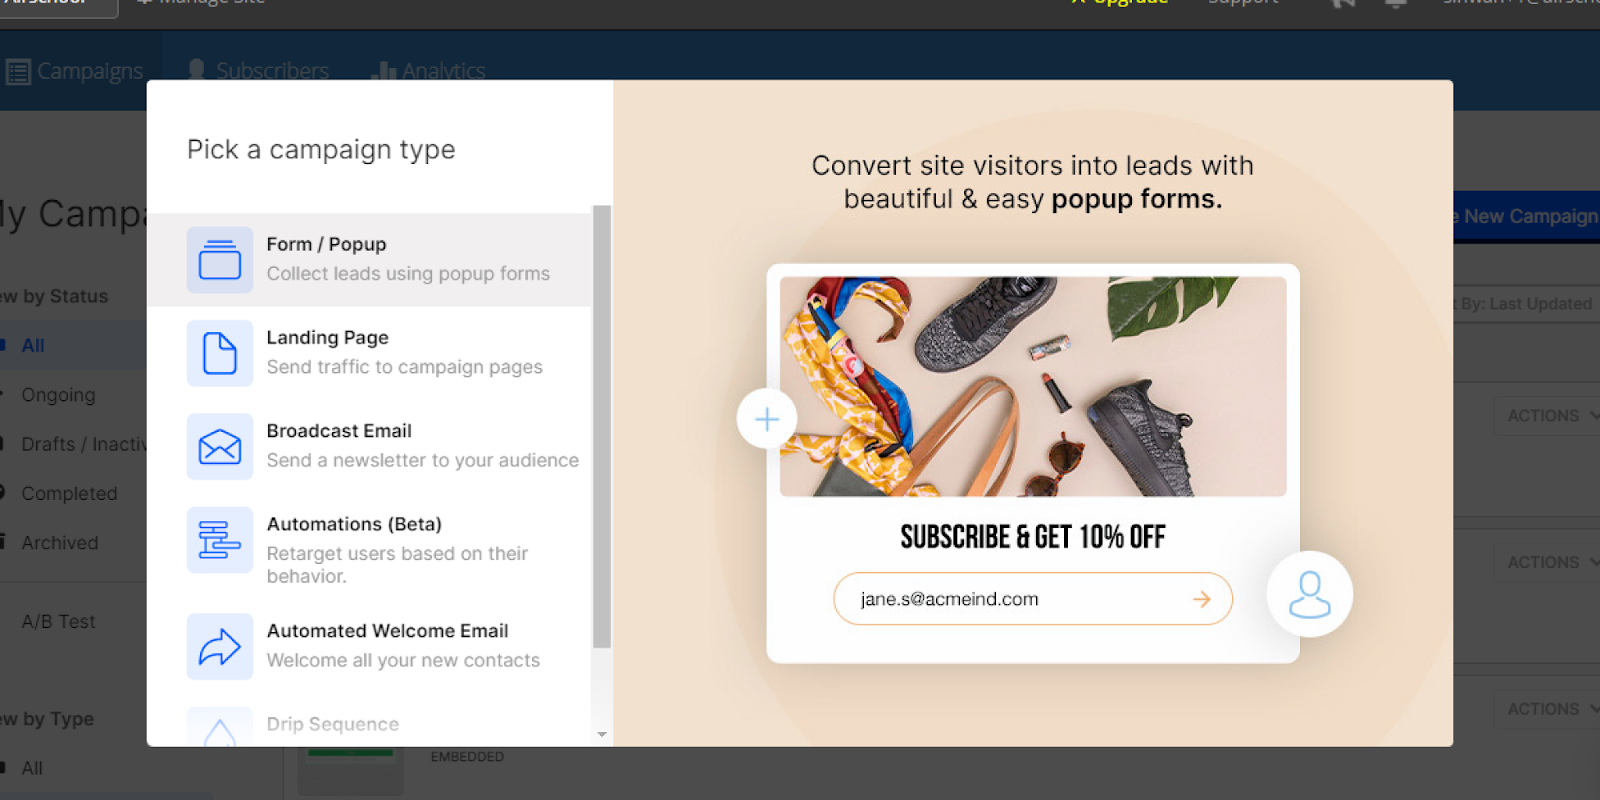 MailMunch campaign options for lead generation and email marketing